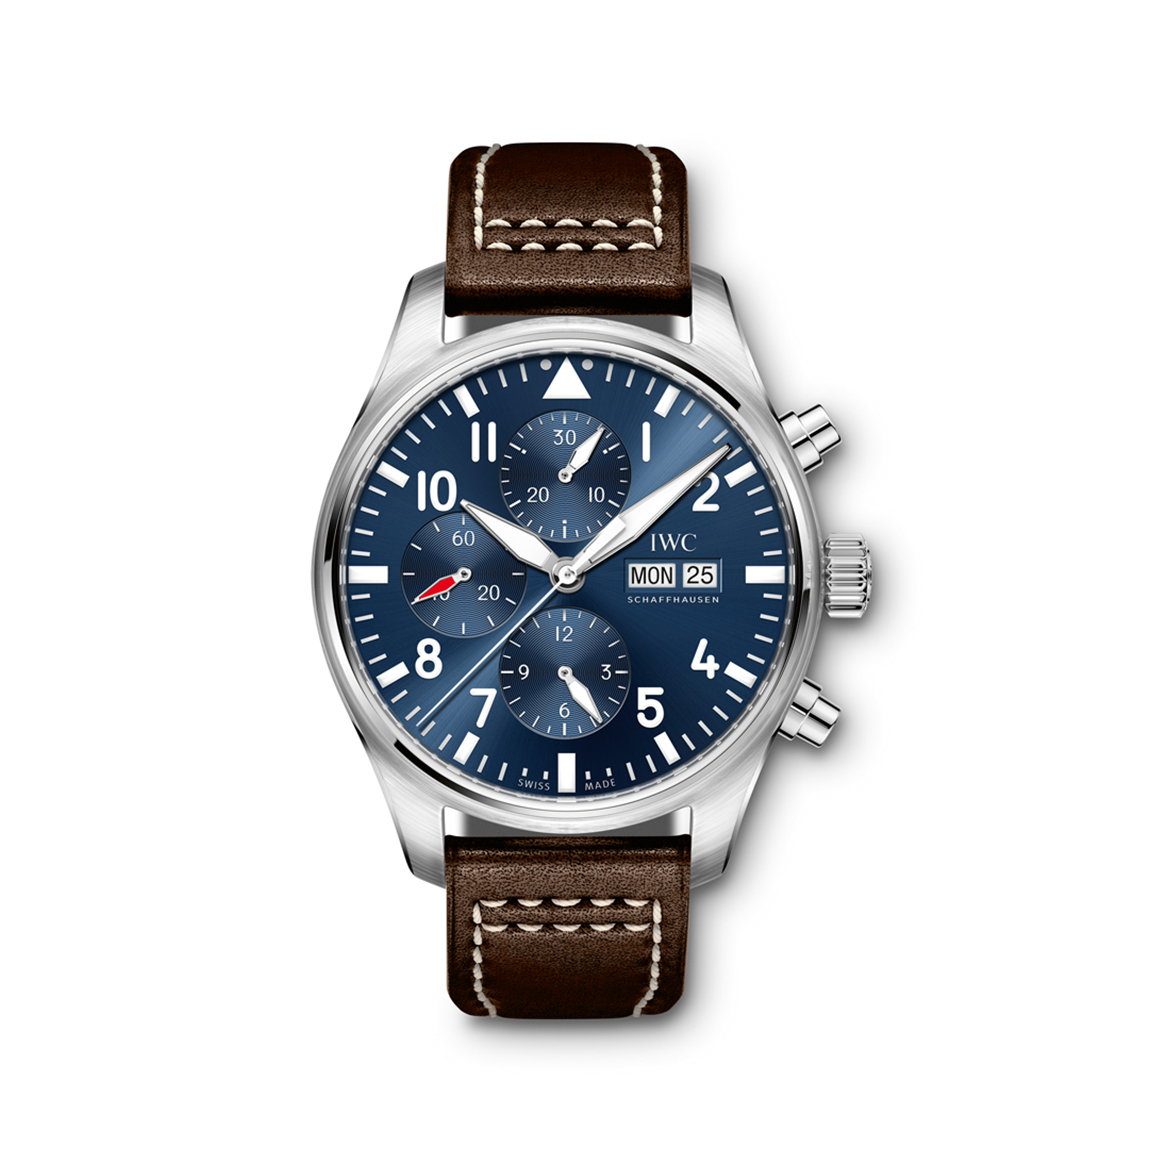 PILOT'S WATCHES image